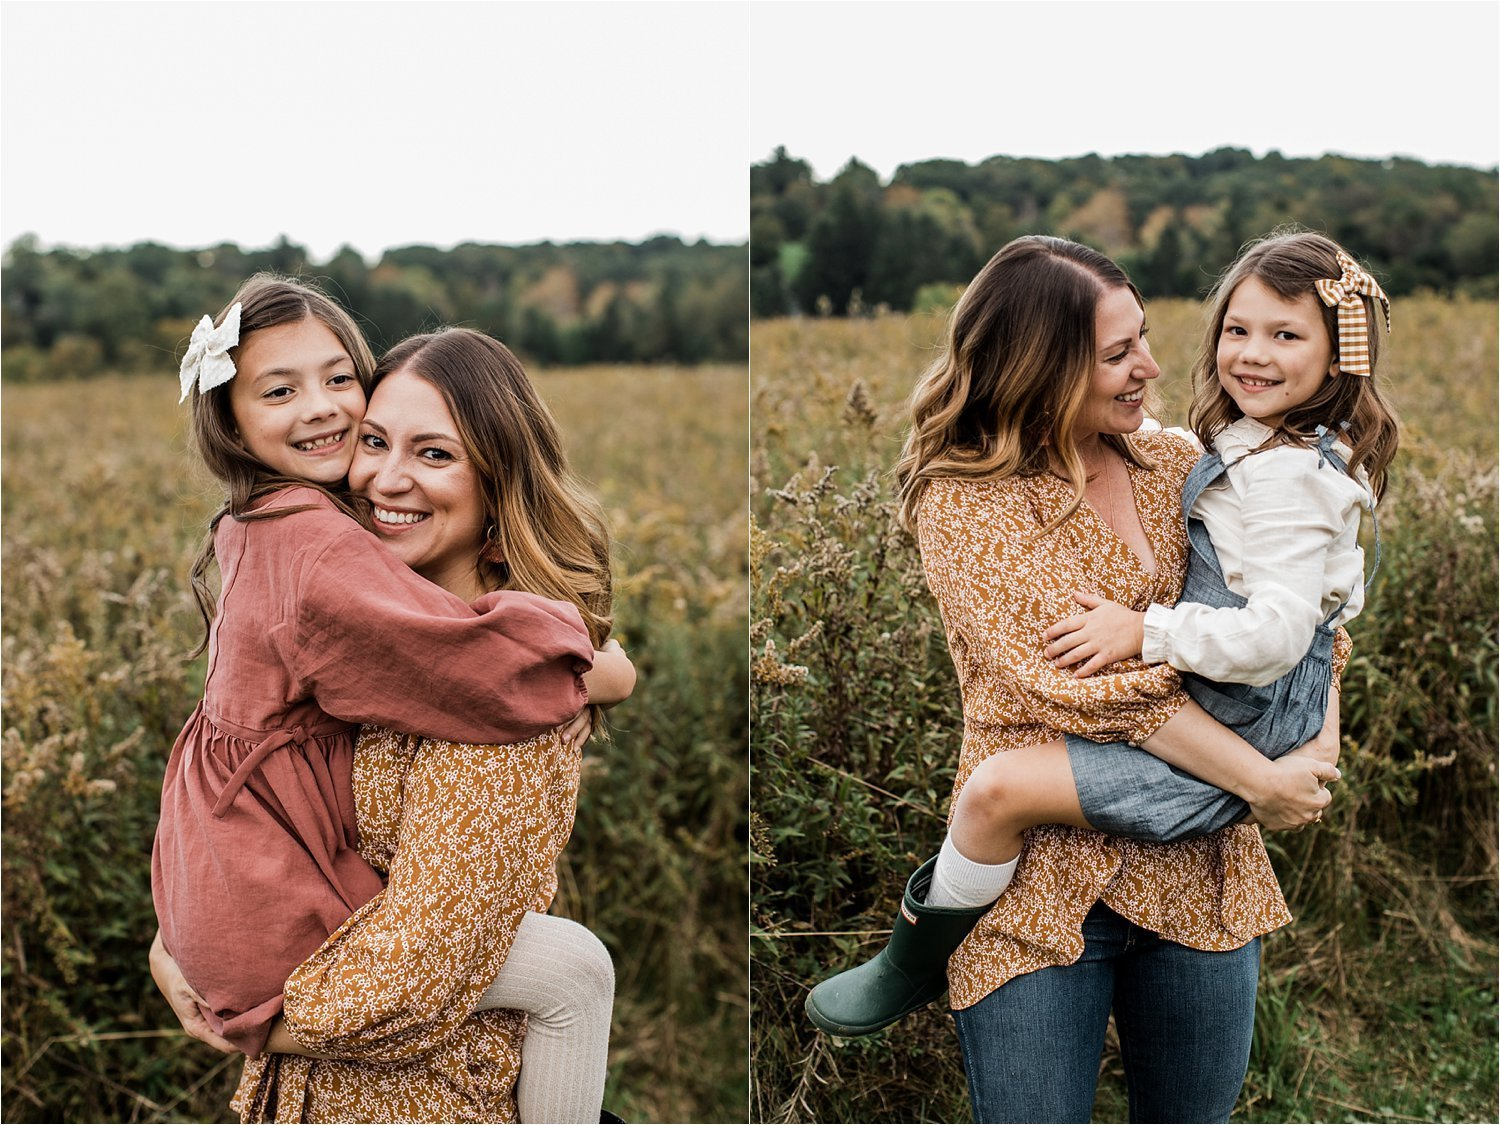 mother and daughter photos in open field